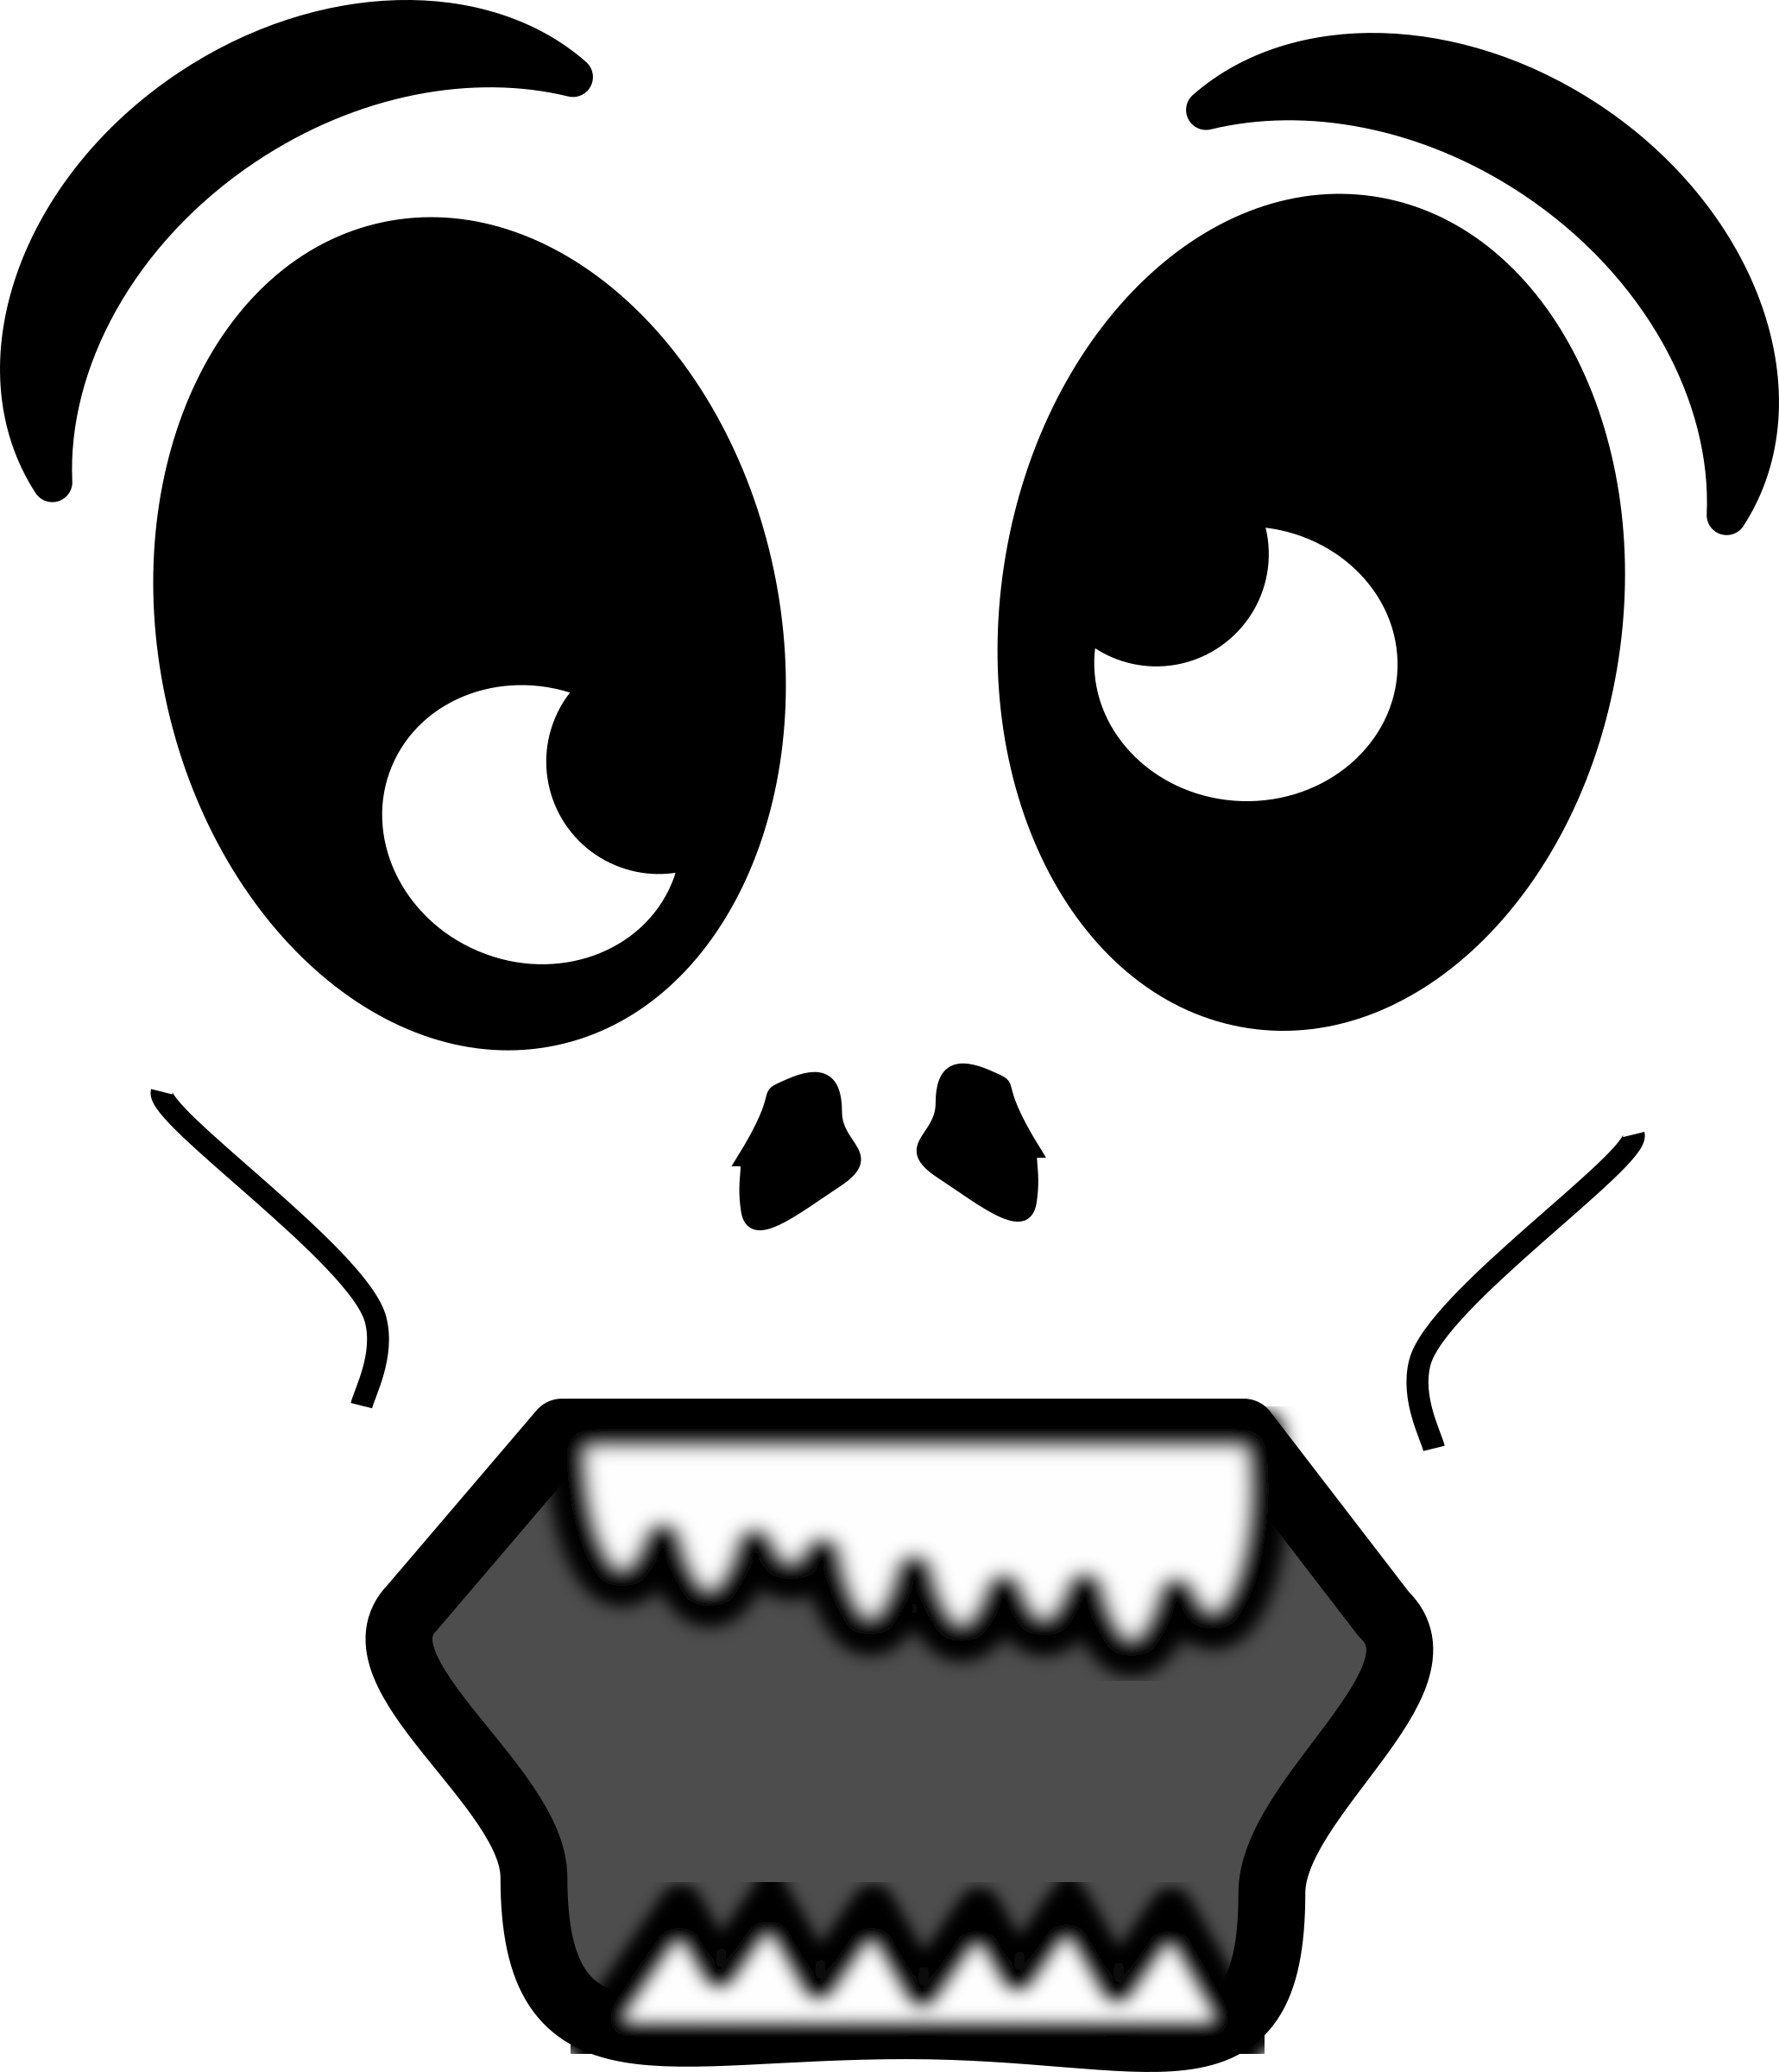 Cartoon face png. Clipart zombie